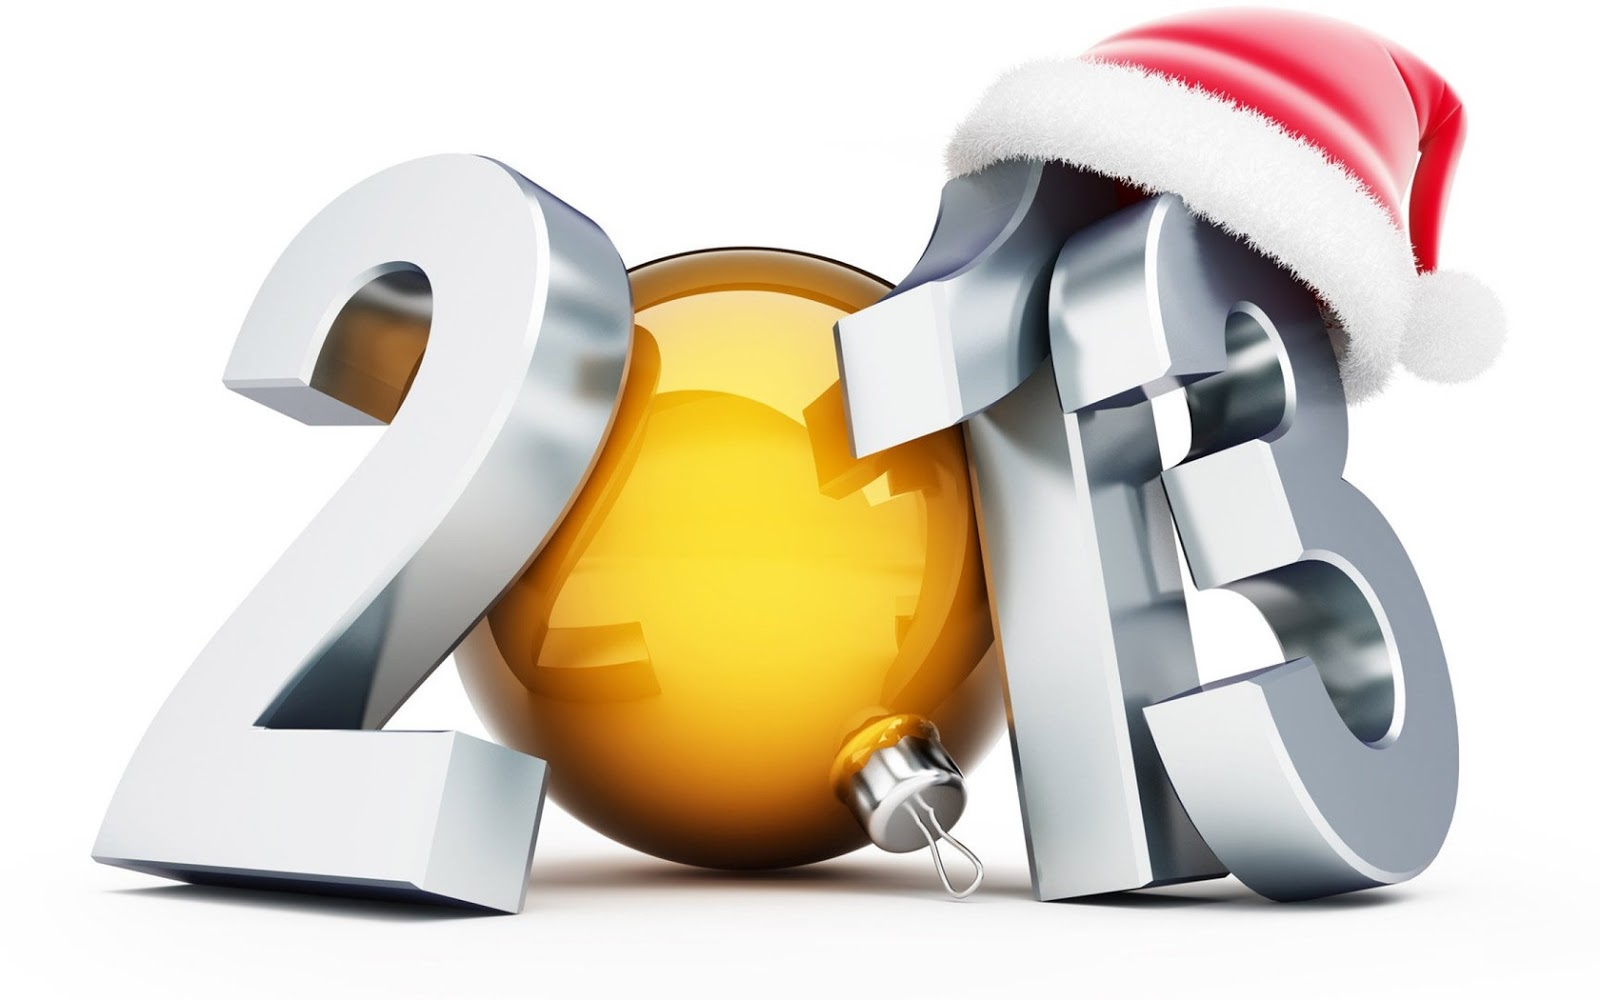 http://1.bp.blogspot.com/-Ipd_RZE5mQI/UM8aPGbdtSI/AAAAAAAAA3M/9Cqx4UZUJ3k/s1600/Happy-new-Year-2013-HD-Wallpapers.jpg